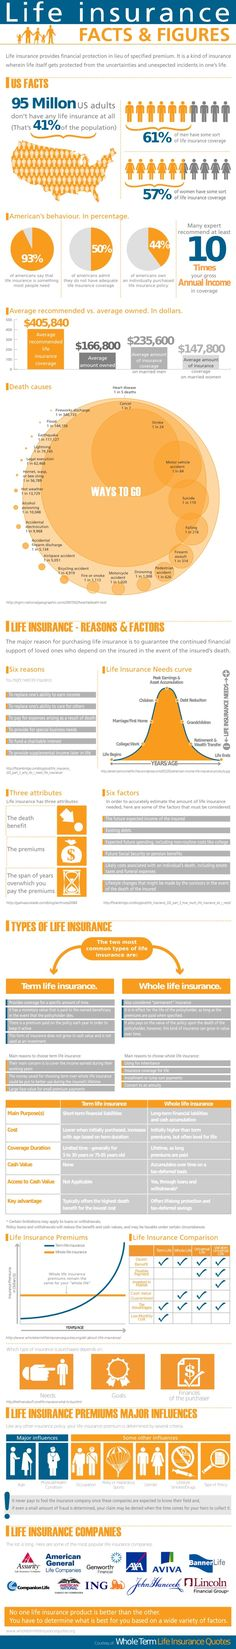 life insurance facts and figures 1